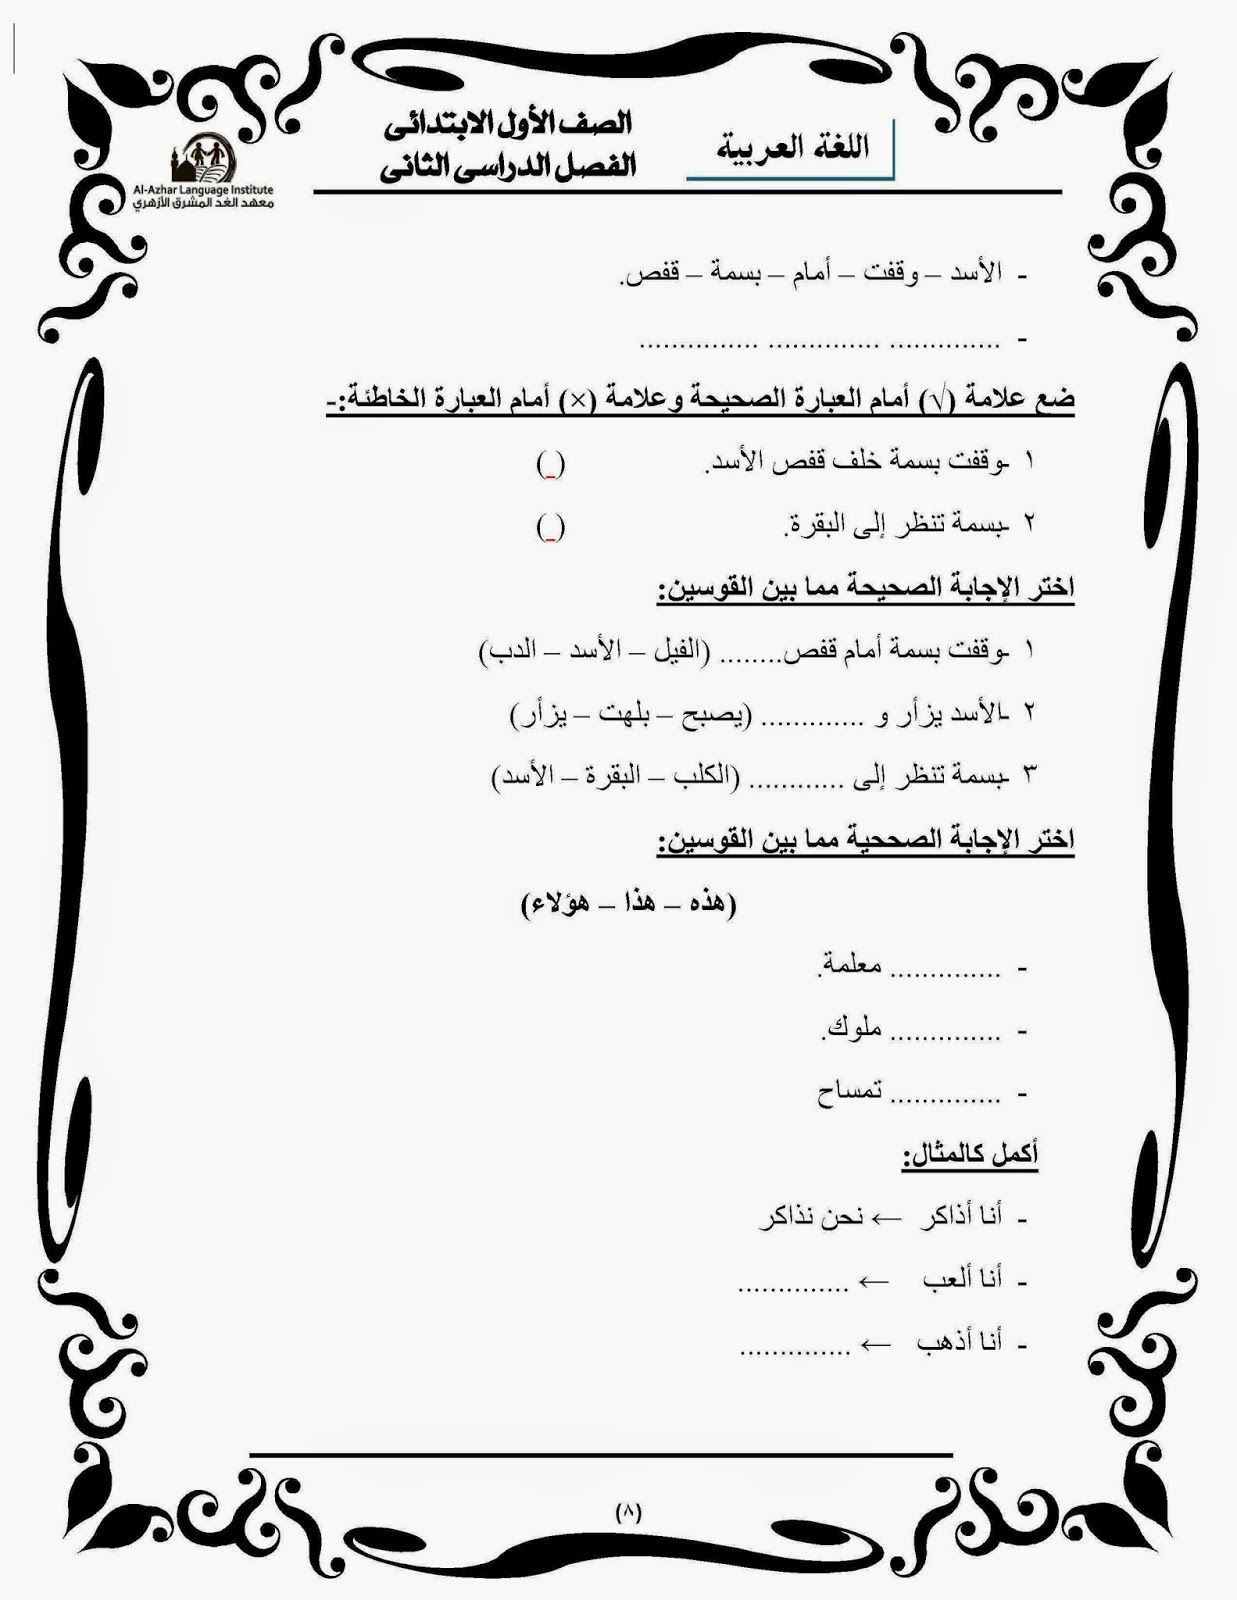 pin by naima mustapha on arabic worksheet learn arabic online arabic lessons learning arabic. Black Bedroom Furniture Sets. Home Design Ideas